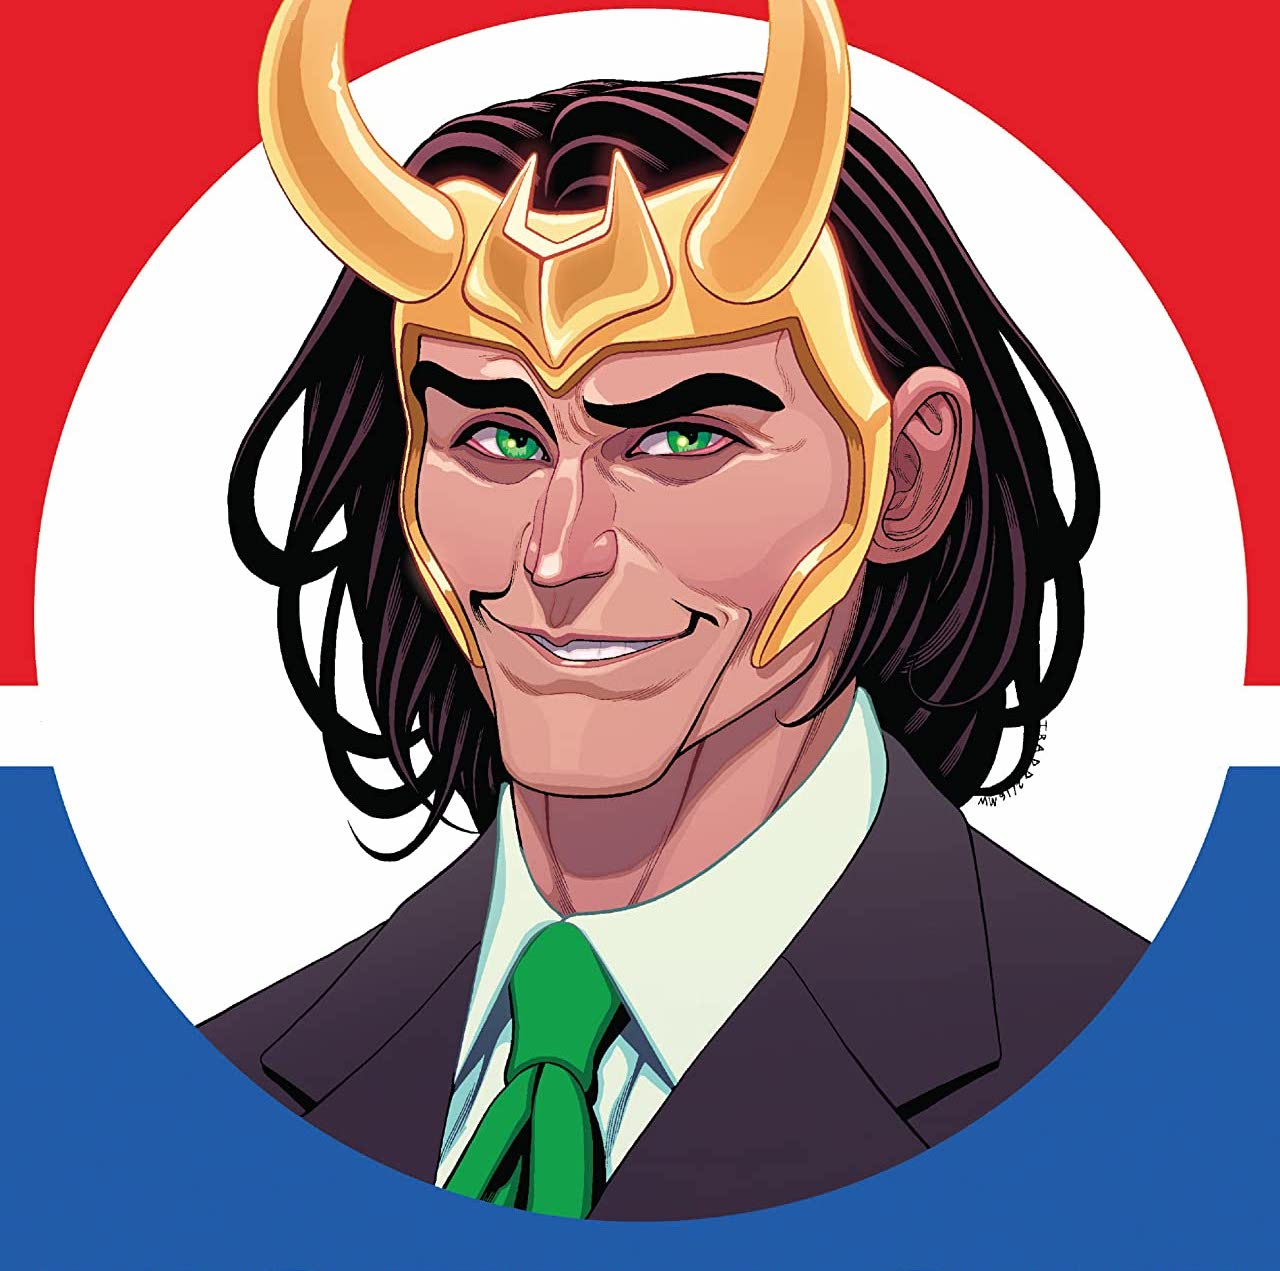 'Vote Loki' cleverly mixes politics, lying, and the responsibility of being president